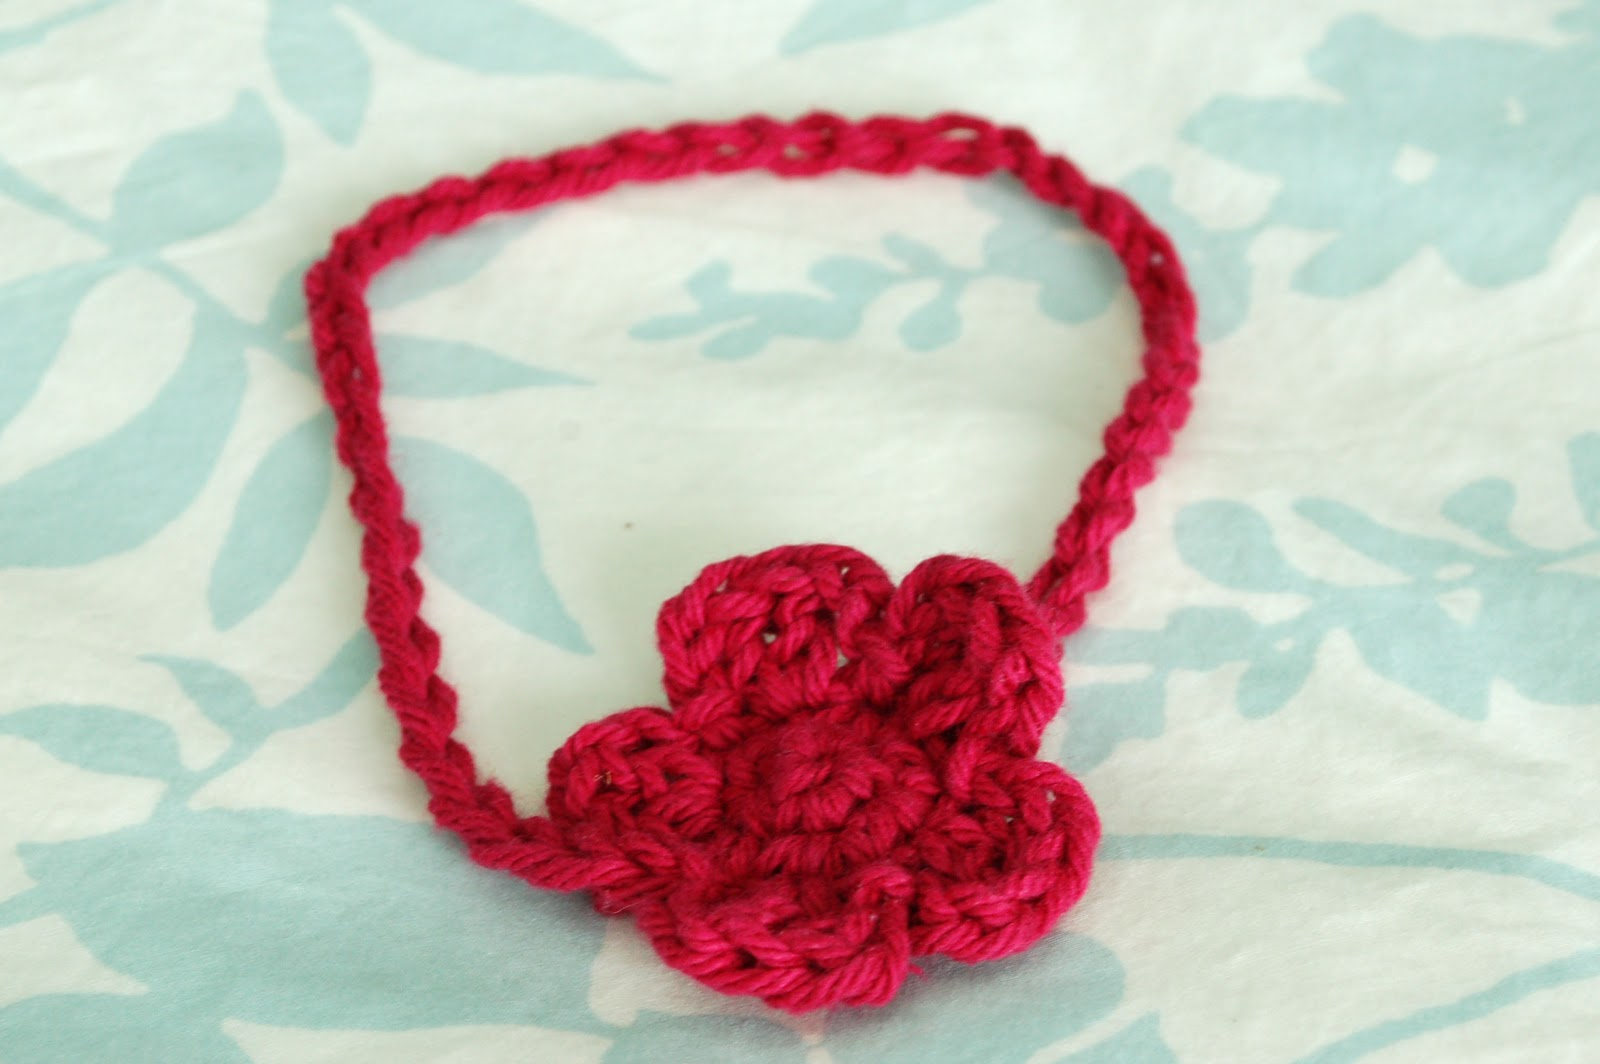 Crochet Headband Pattern Newborn : Crochet Pattern Baby Headband ? Crochet Patterns Books